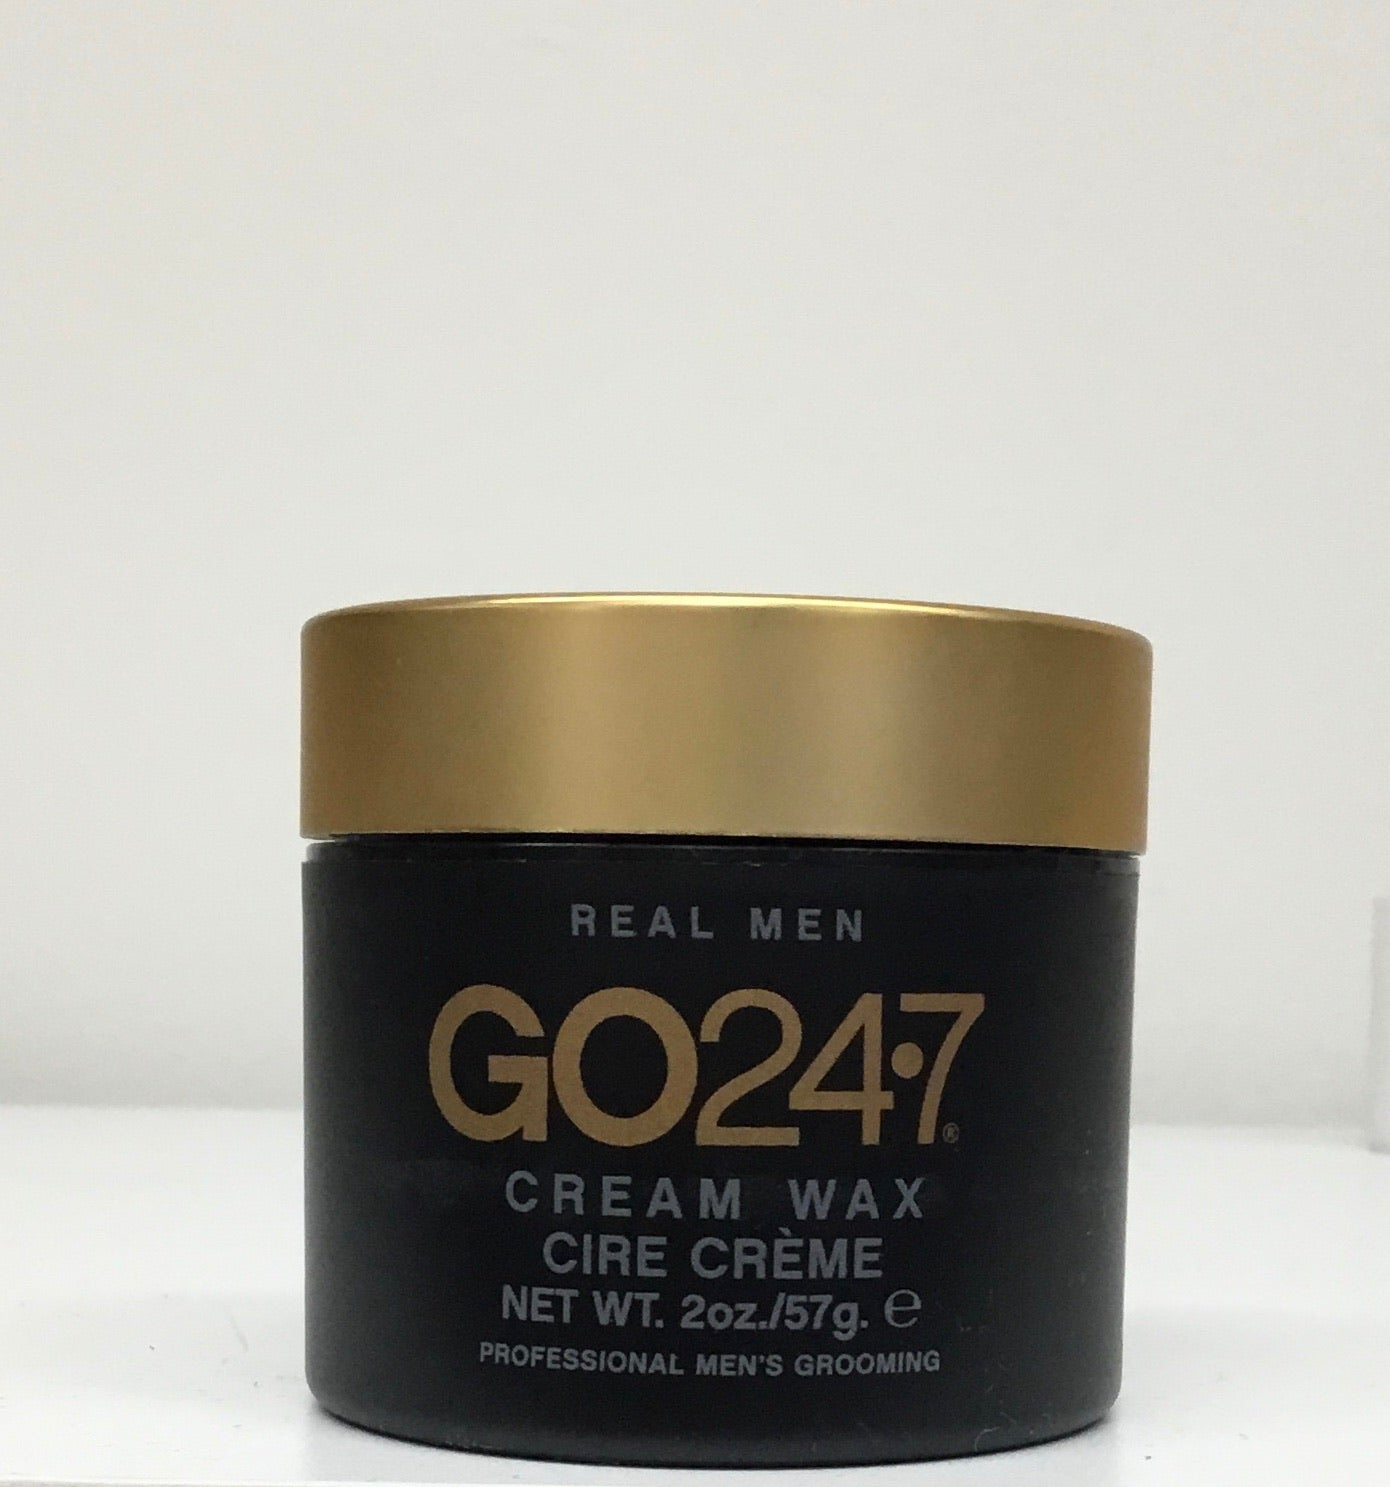 Go24.7 Cream Wax